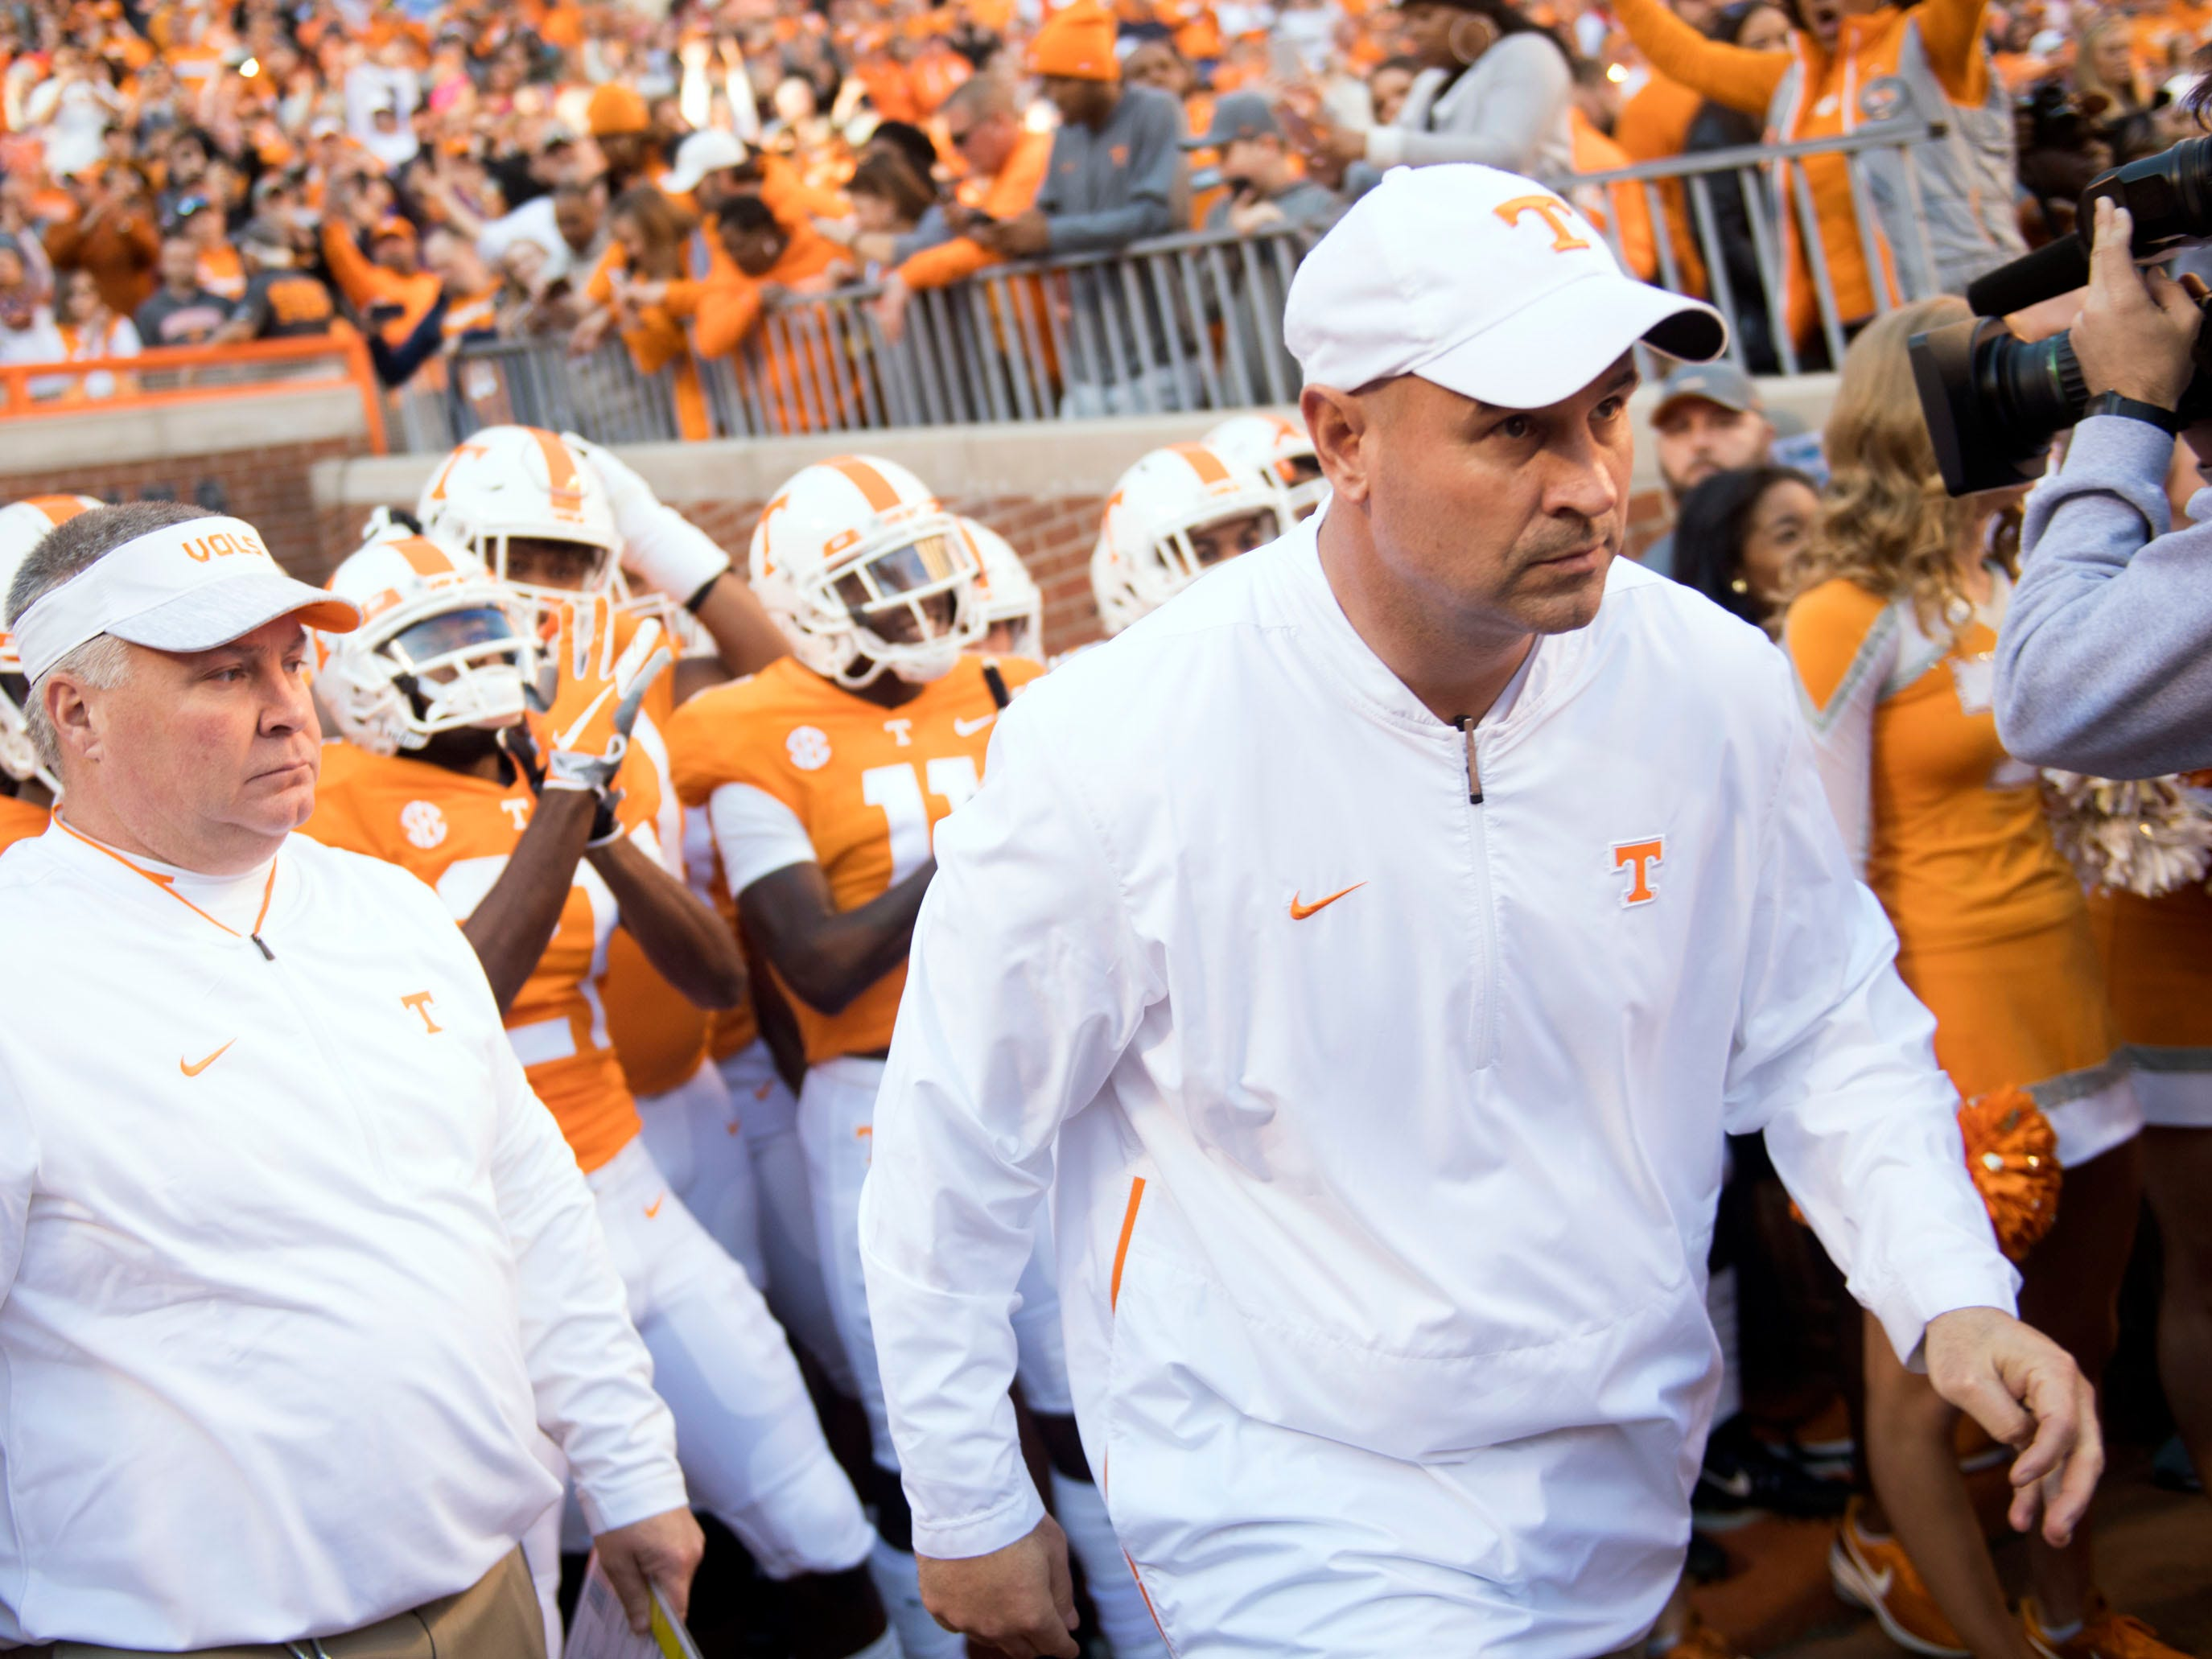 Tennessee Head Coach Jeremy Pruitt leads the team onto the field for game against Missouri on Saturday, November 17, 2018.